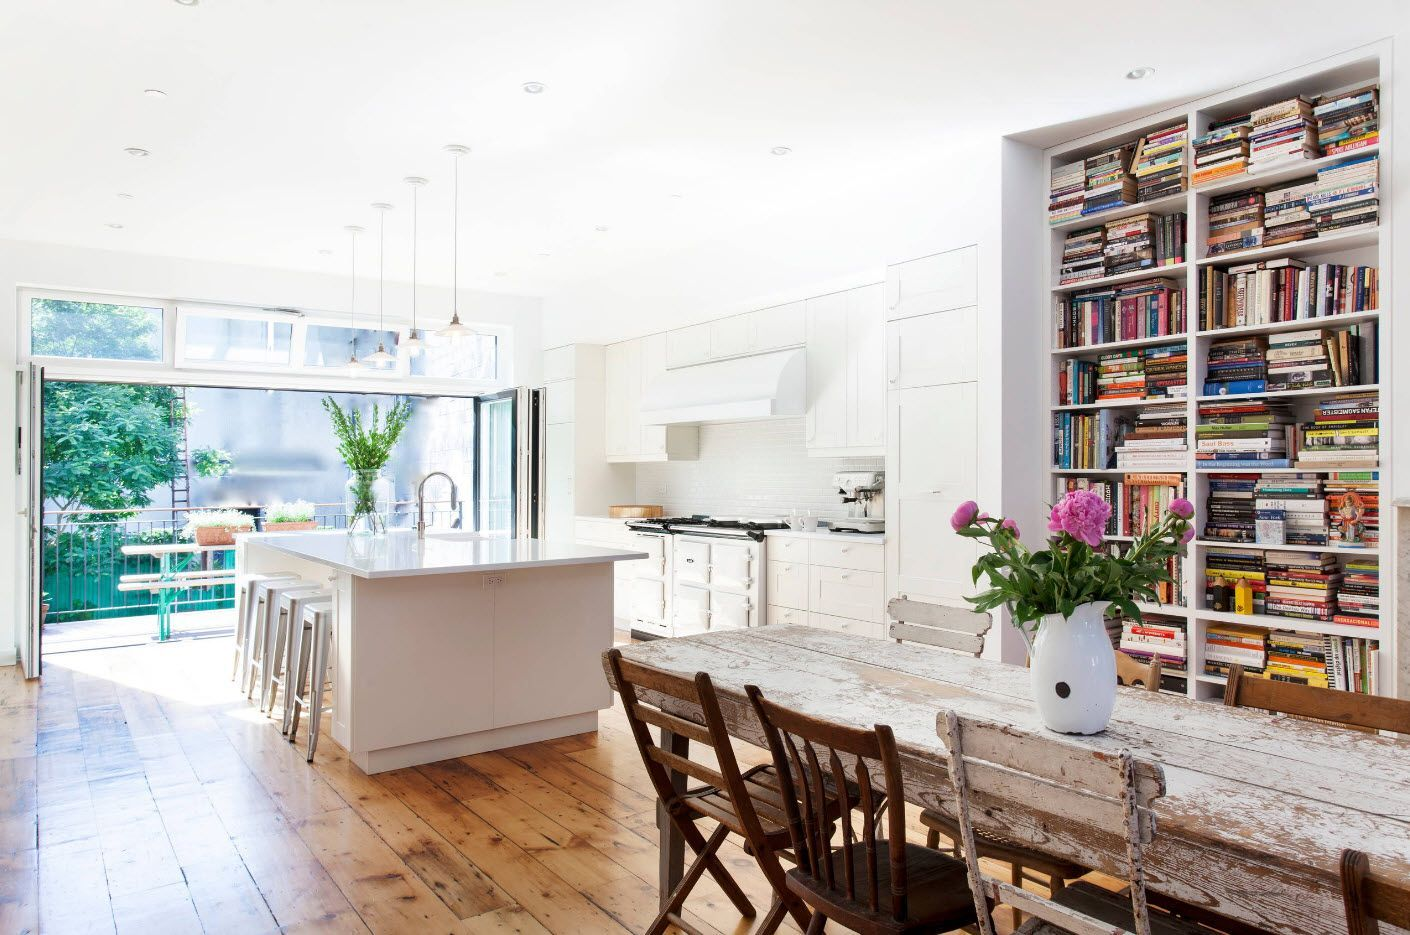 Couple of zones in the homey modern complex designed kitchen with parquet flooring